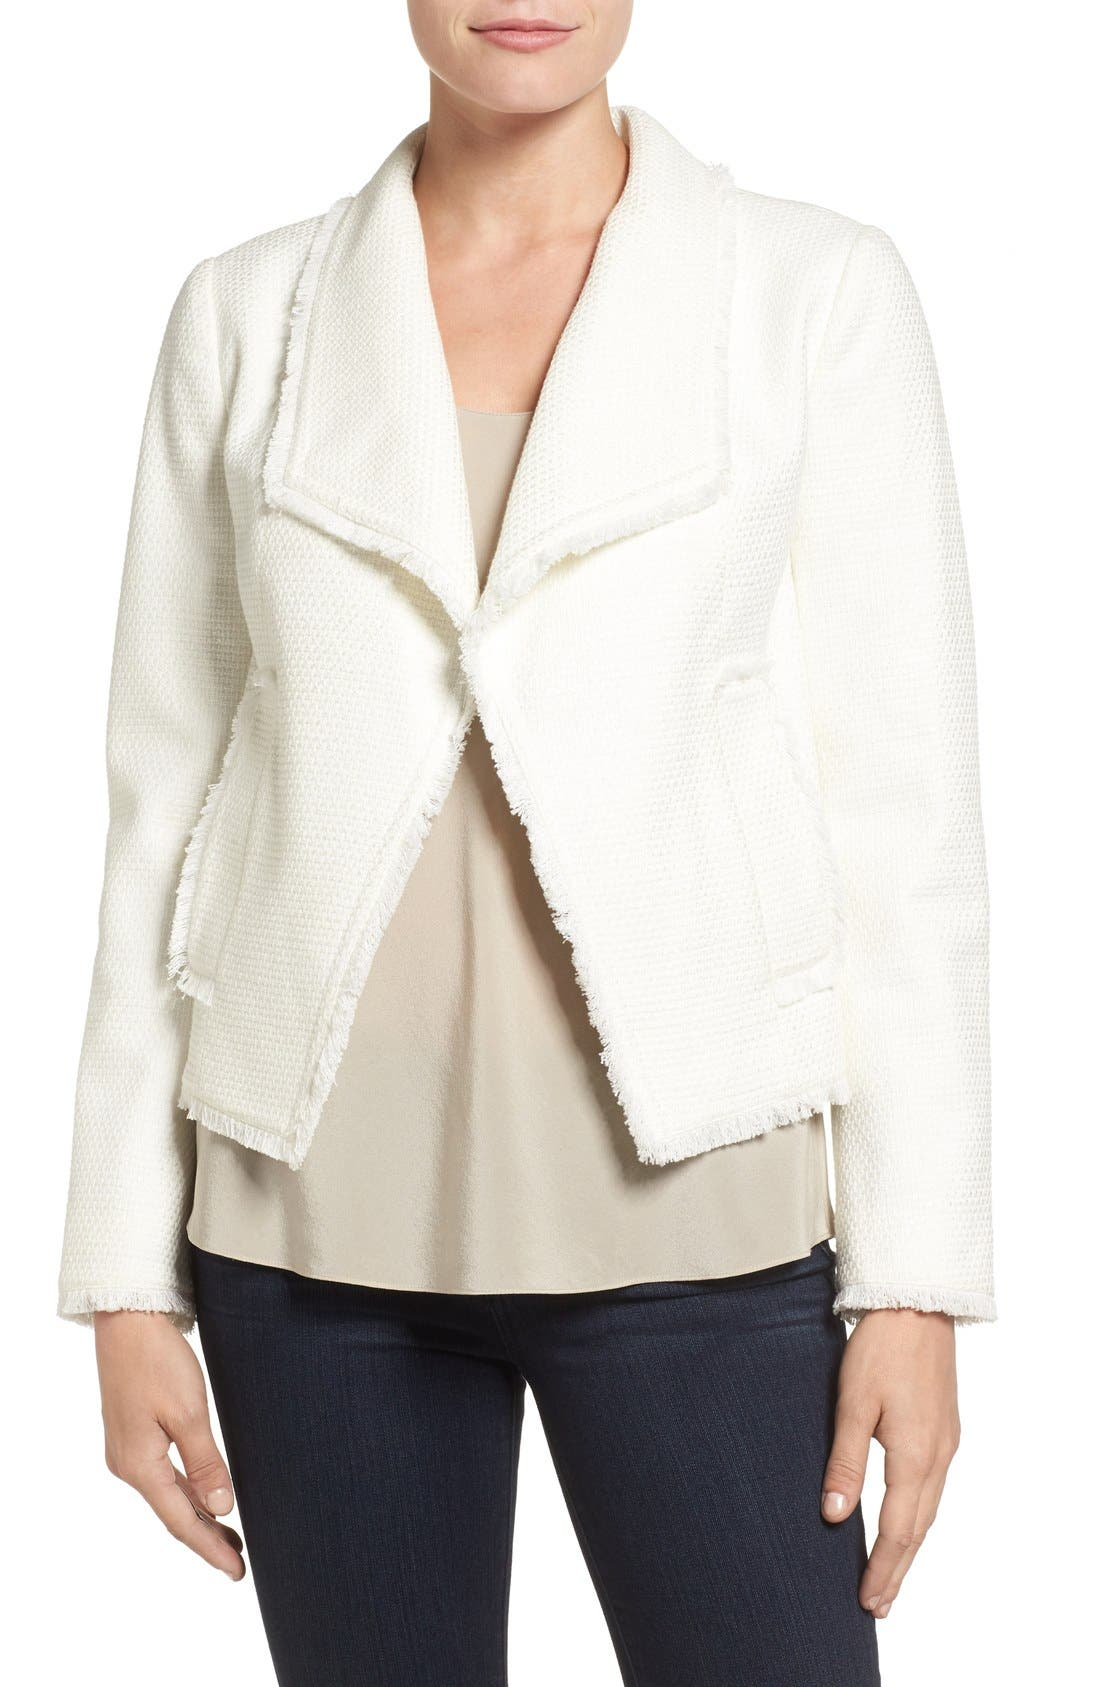 Alternate Image 1 Selected - MICHAEL Michael Kors Tweed Jacket